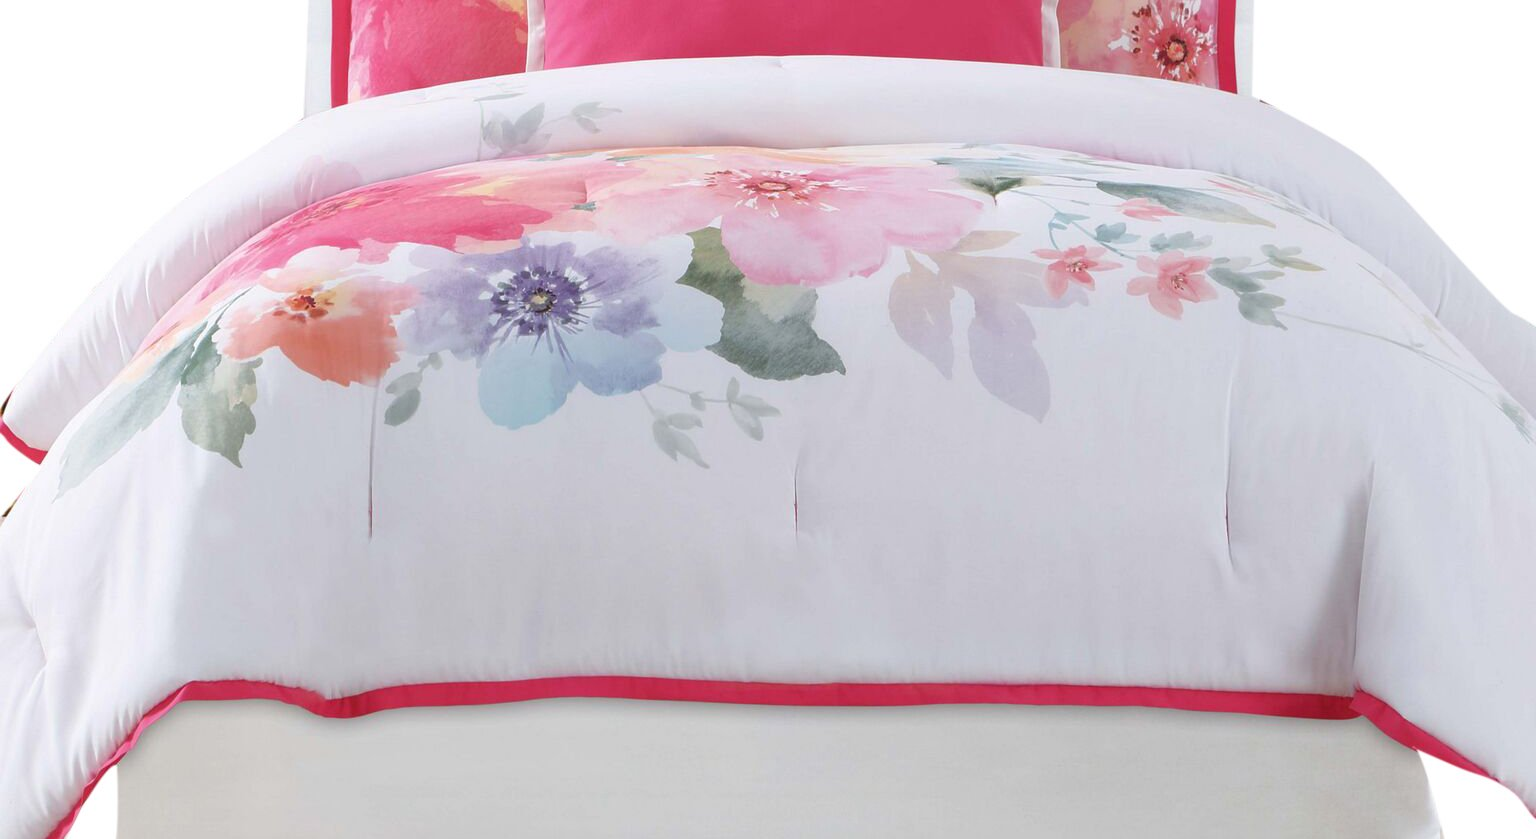 Christian Siriano Bold Floral Full/Queen 3 Piece Duvet Cover Set